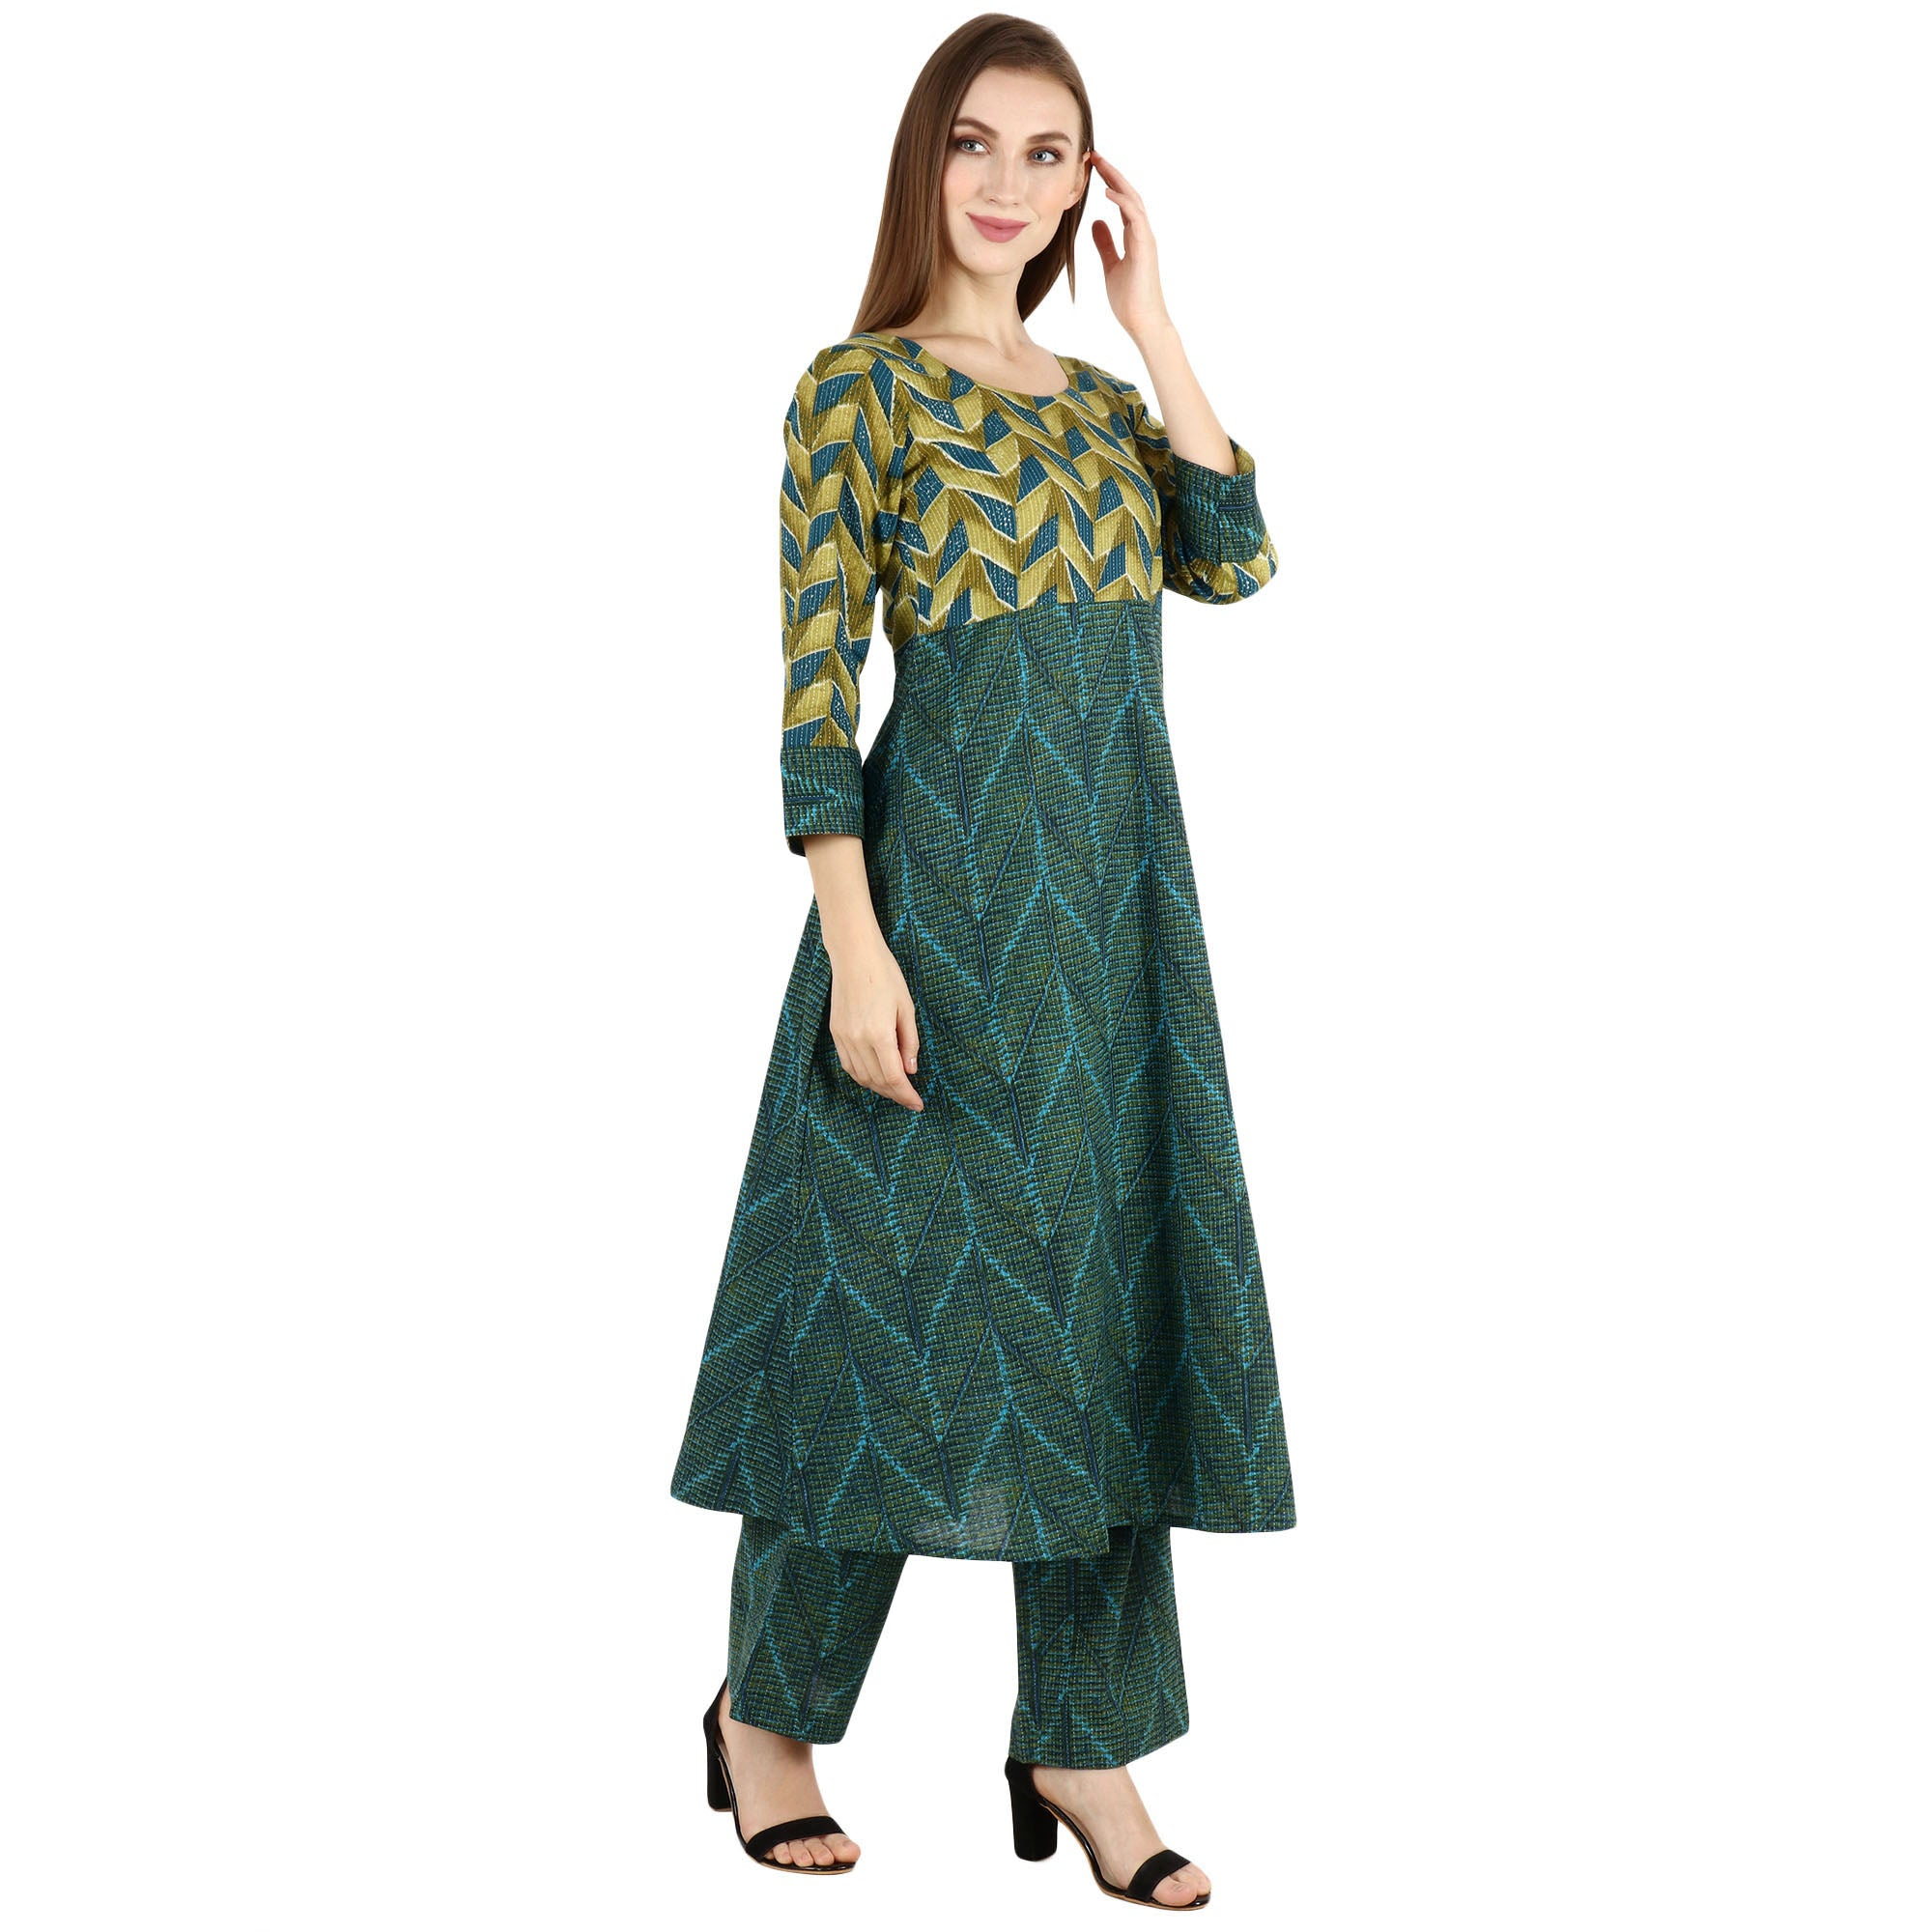 3/4 QUARTER SLEEVES, all size, all sizes, apella, best online store, COTTON, EMBROIDERY, KURTA SET, kurta suits, palazzo suits, plus size, pluz size, rayon, reasonable price, shop online, ski